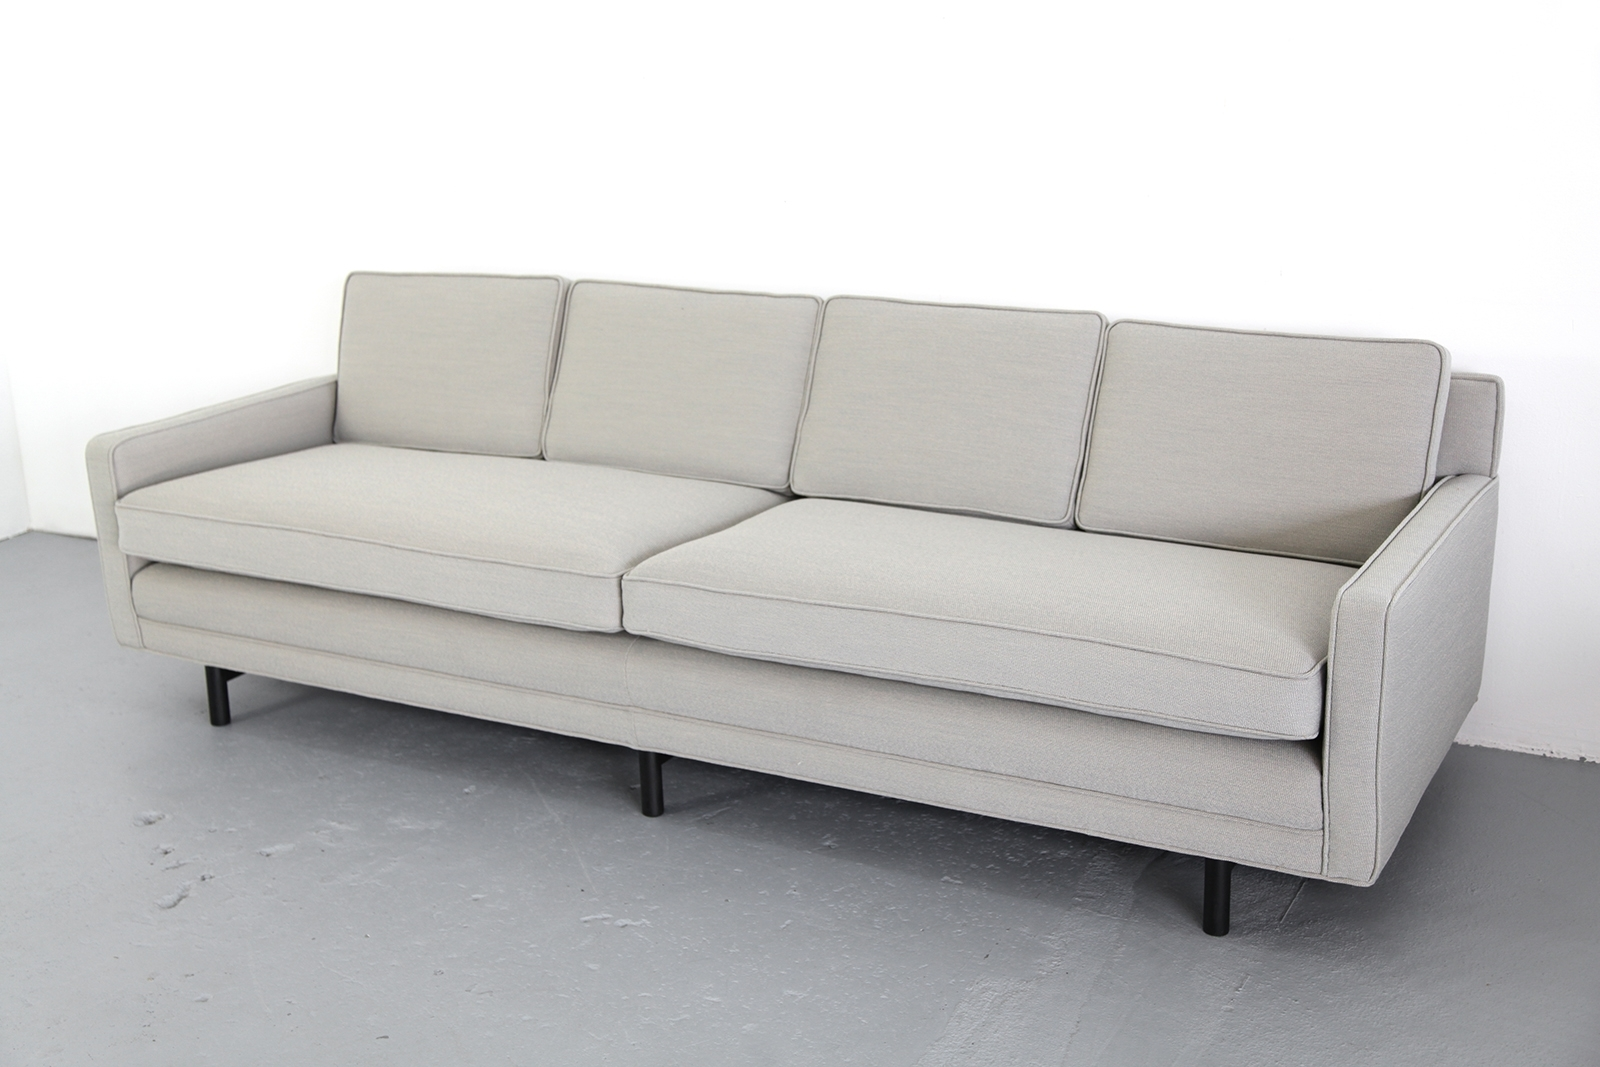 4 Seater Sofapaul Mccobb For Directional For Sale At Pamono With Regard To Trendy 4 Seater Sofas (Gallery 2 of 20)